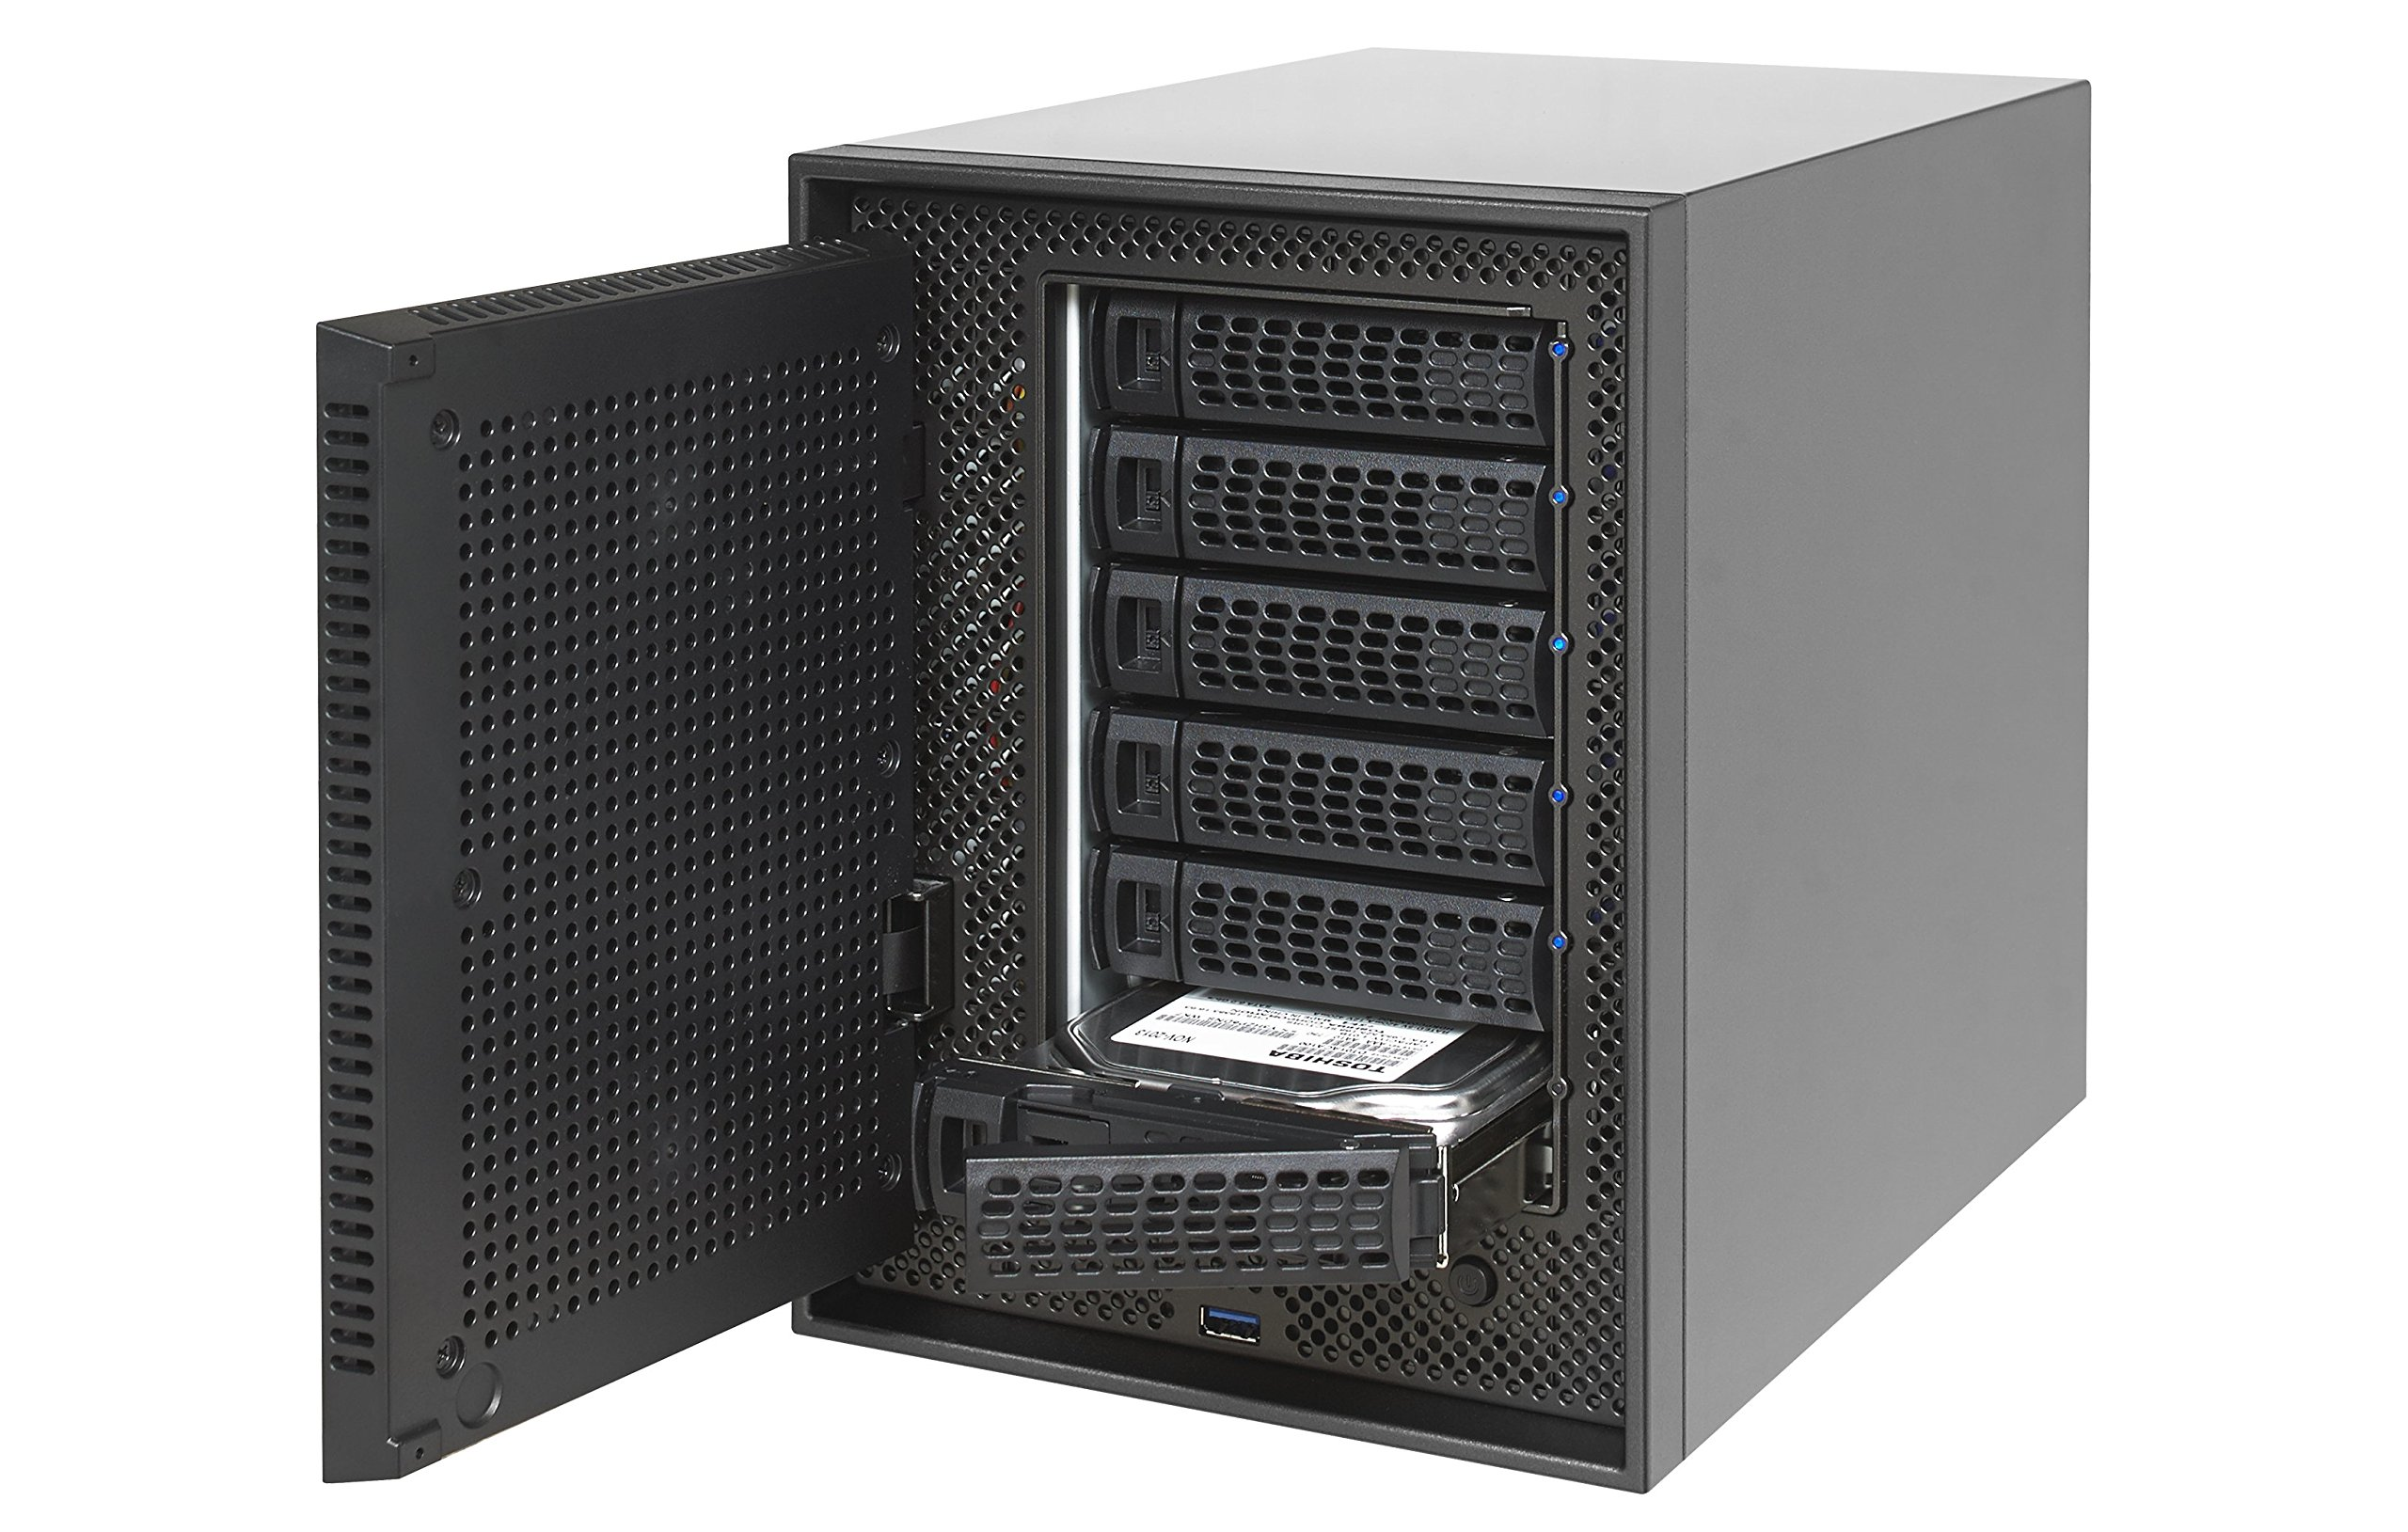 NETGEAR ReadyNAS 6-Bay Ultimate Performance Network Attached Storage, Diskless, 60TB Capacity, Intel Xeon 2.2GHz Quad Core Processor, 8GB RAM (RN626X00-100NES) by NETGEAR (Image #5)